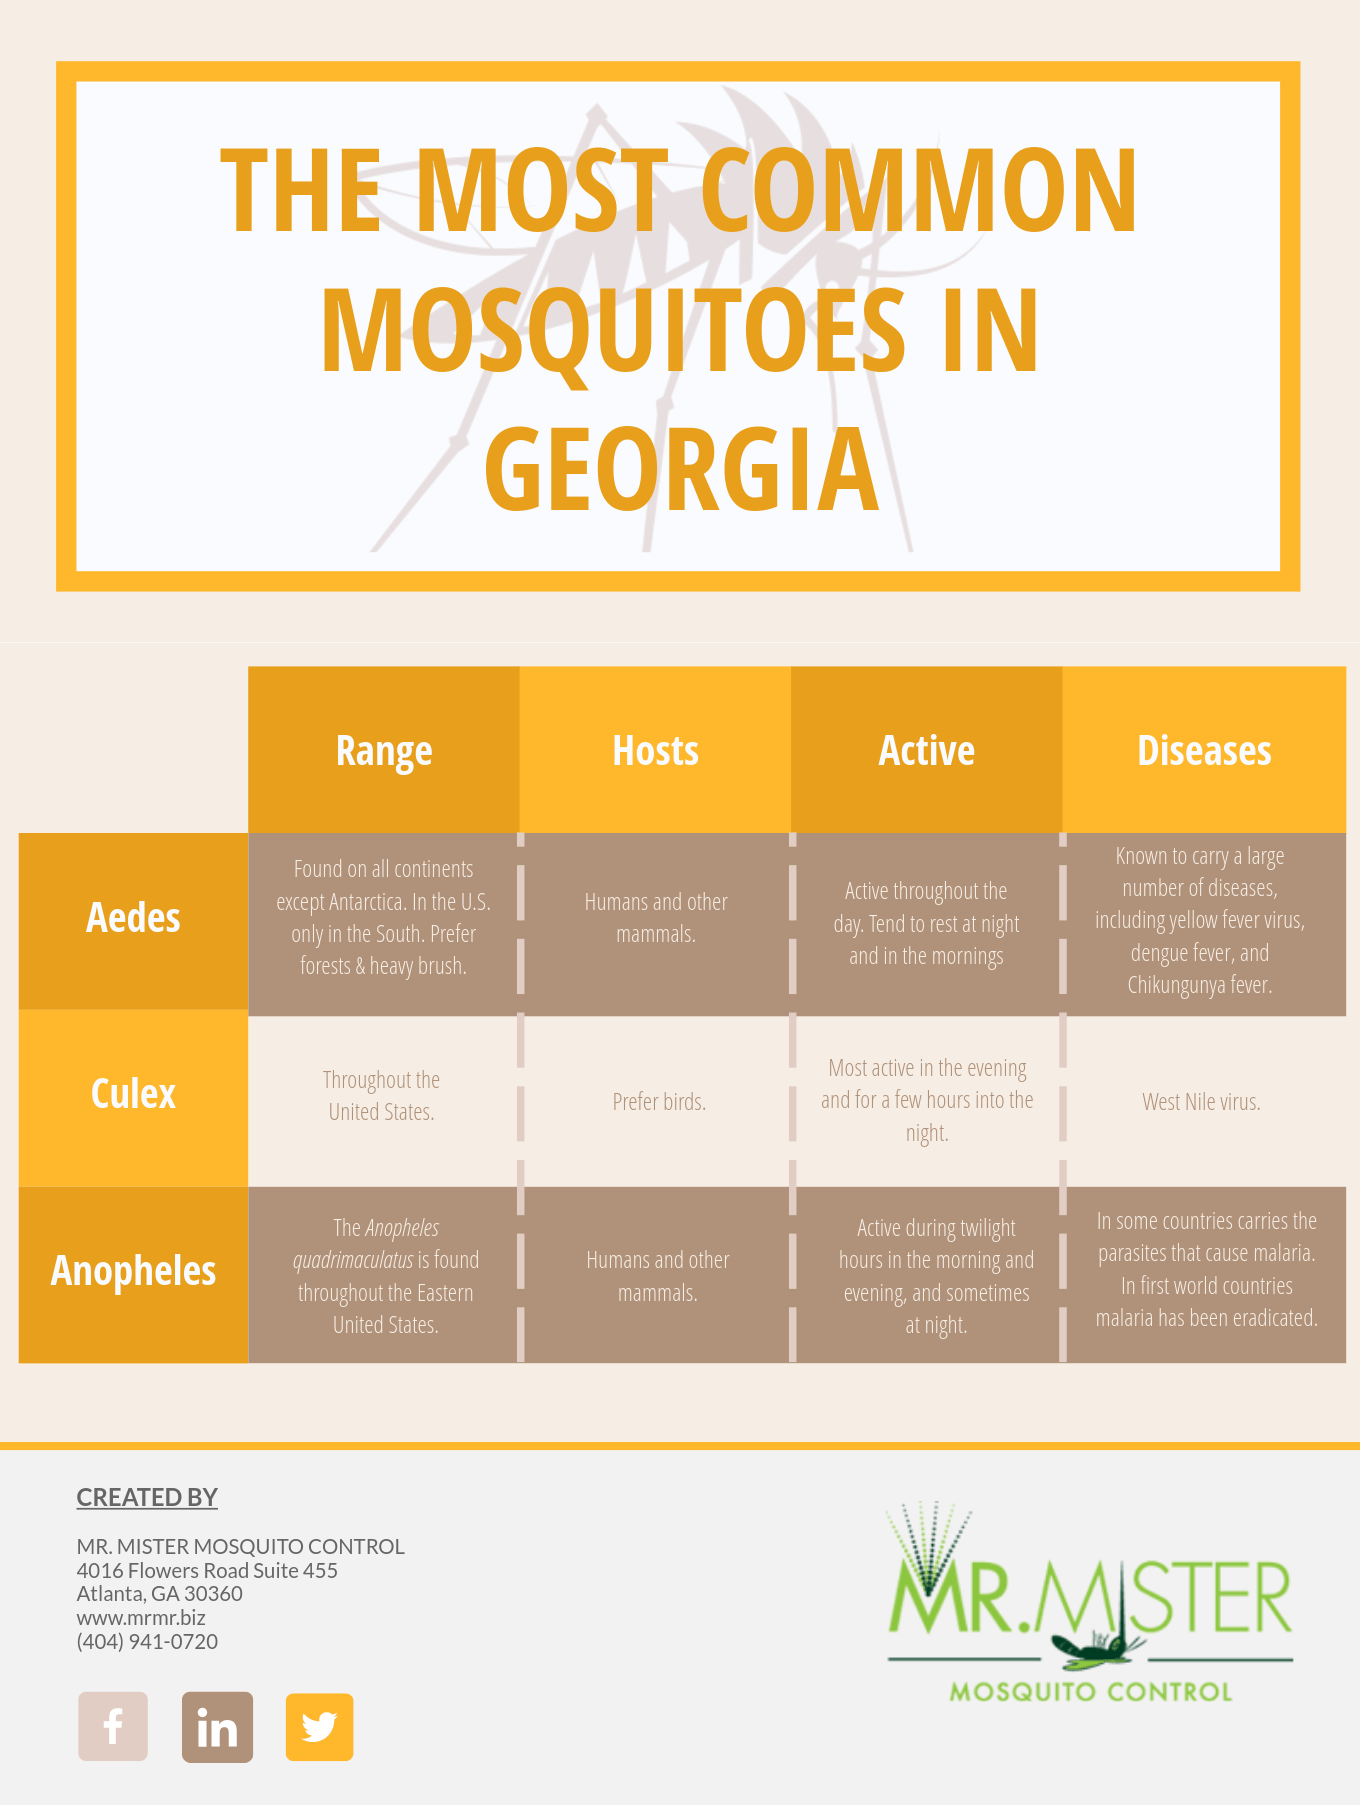 The Most Common Types of Mosquitoes in Georgia [infographic]